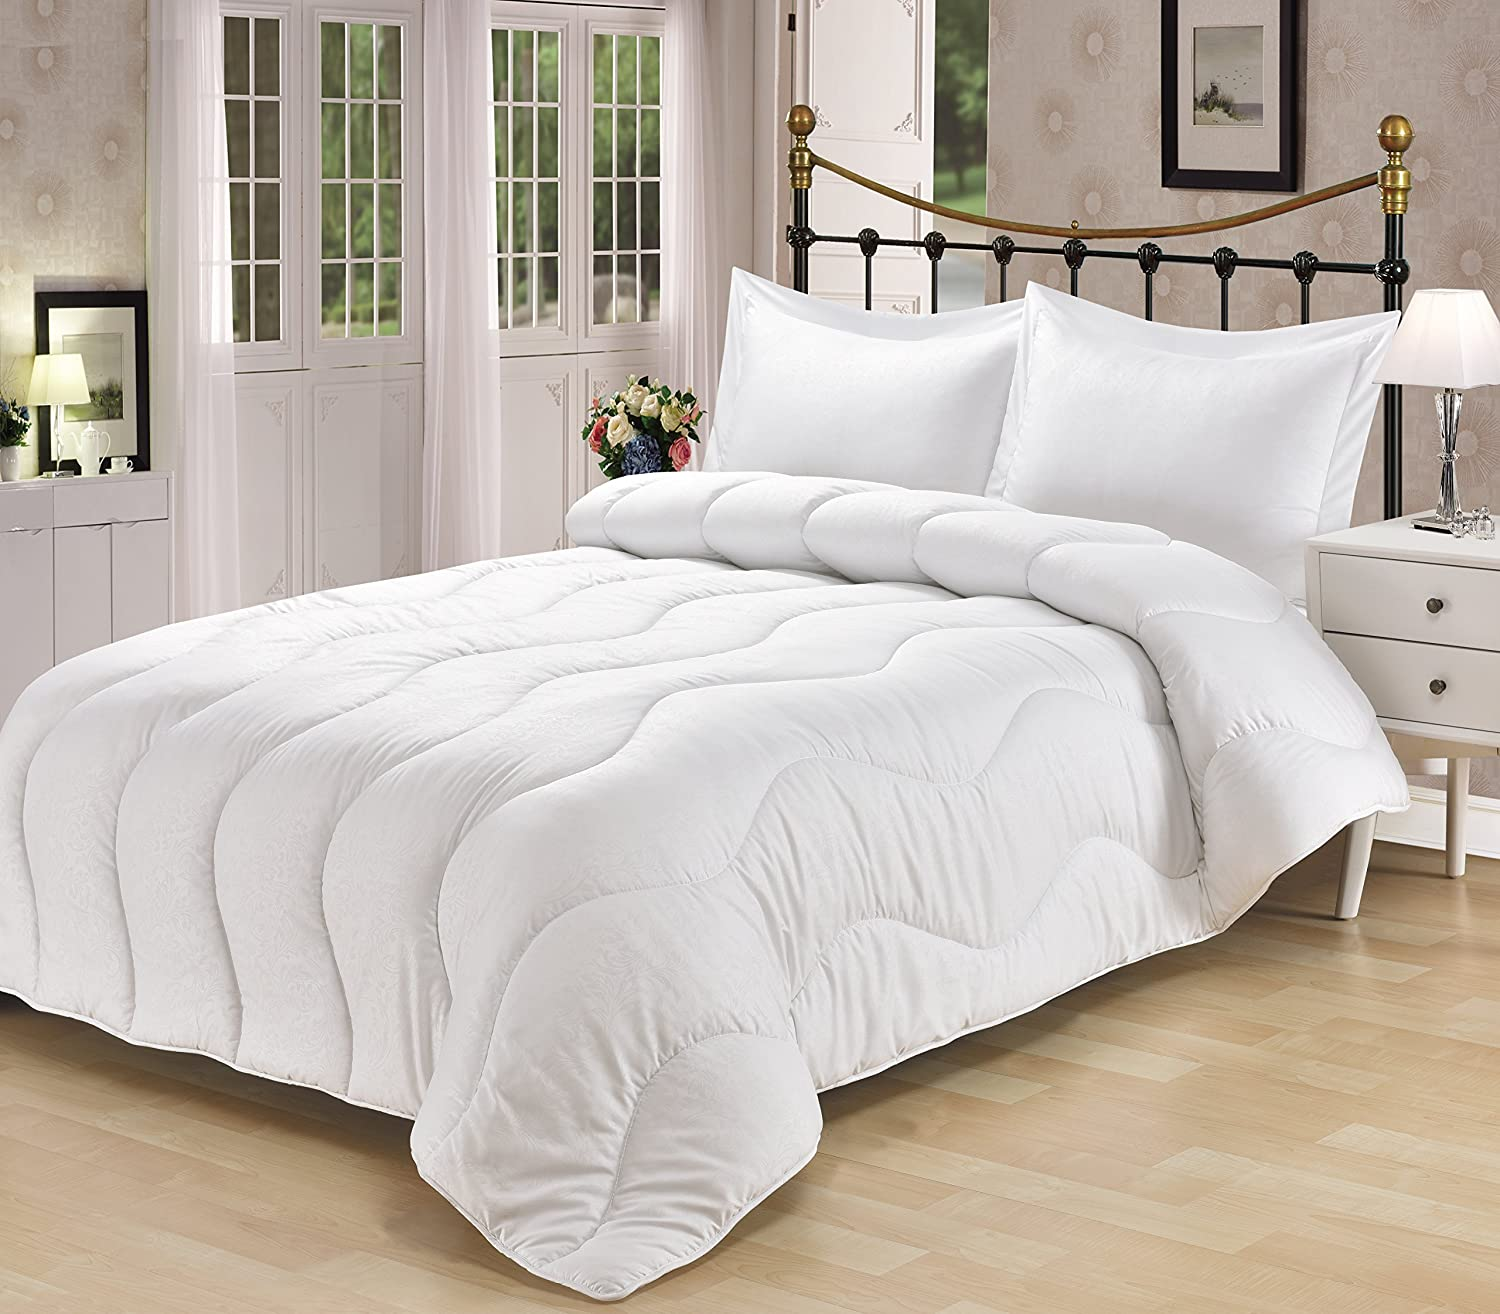 shopping white beds dark cover single cool queen sheet twin poetical bedroom cream covers duvets size barbara online and red comforter duvet bedding floral bedspreads set next of discount quality barry linen king yellow best black quilt doona full modern comforters sets green teal ac